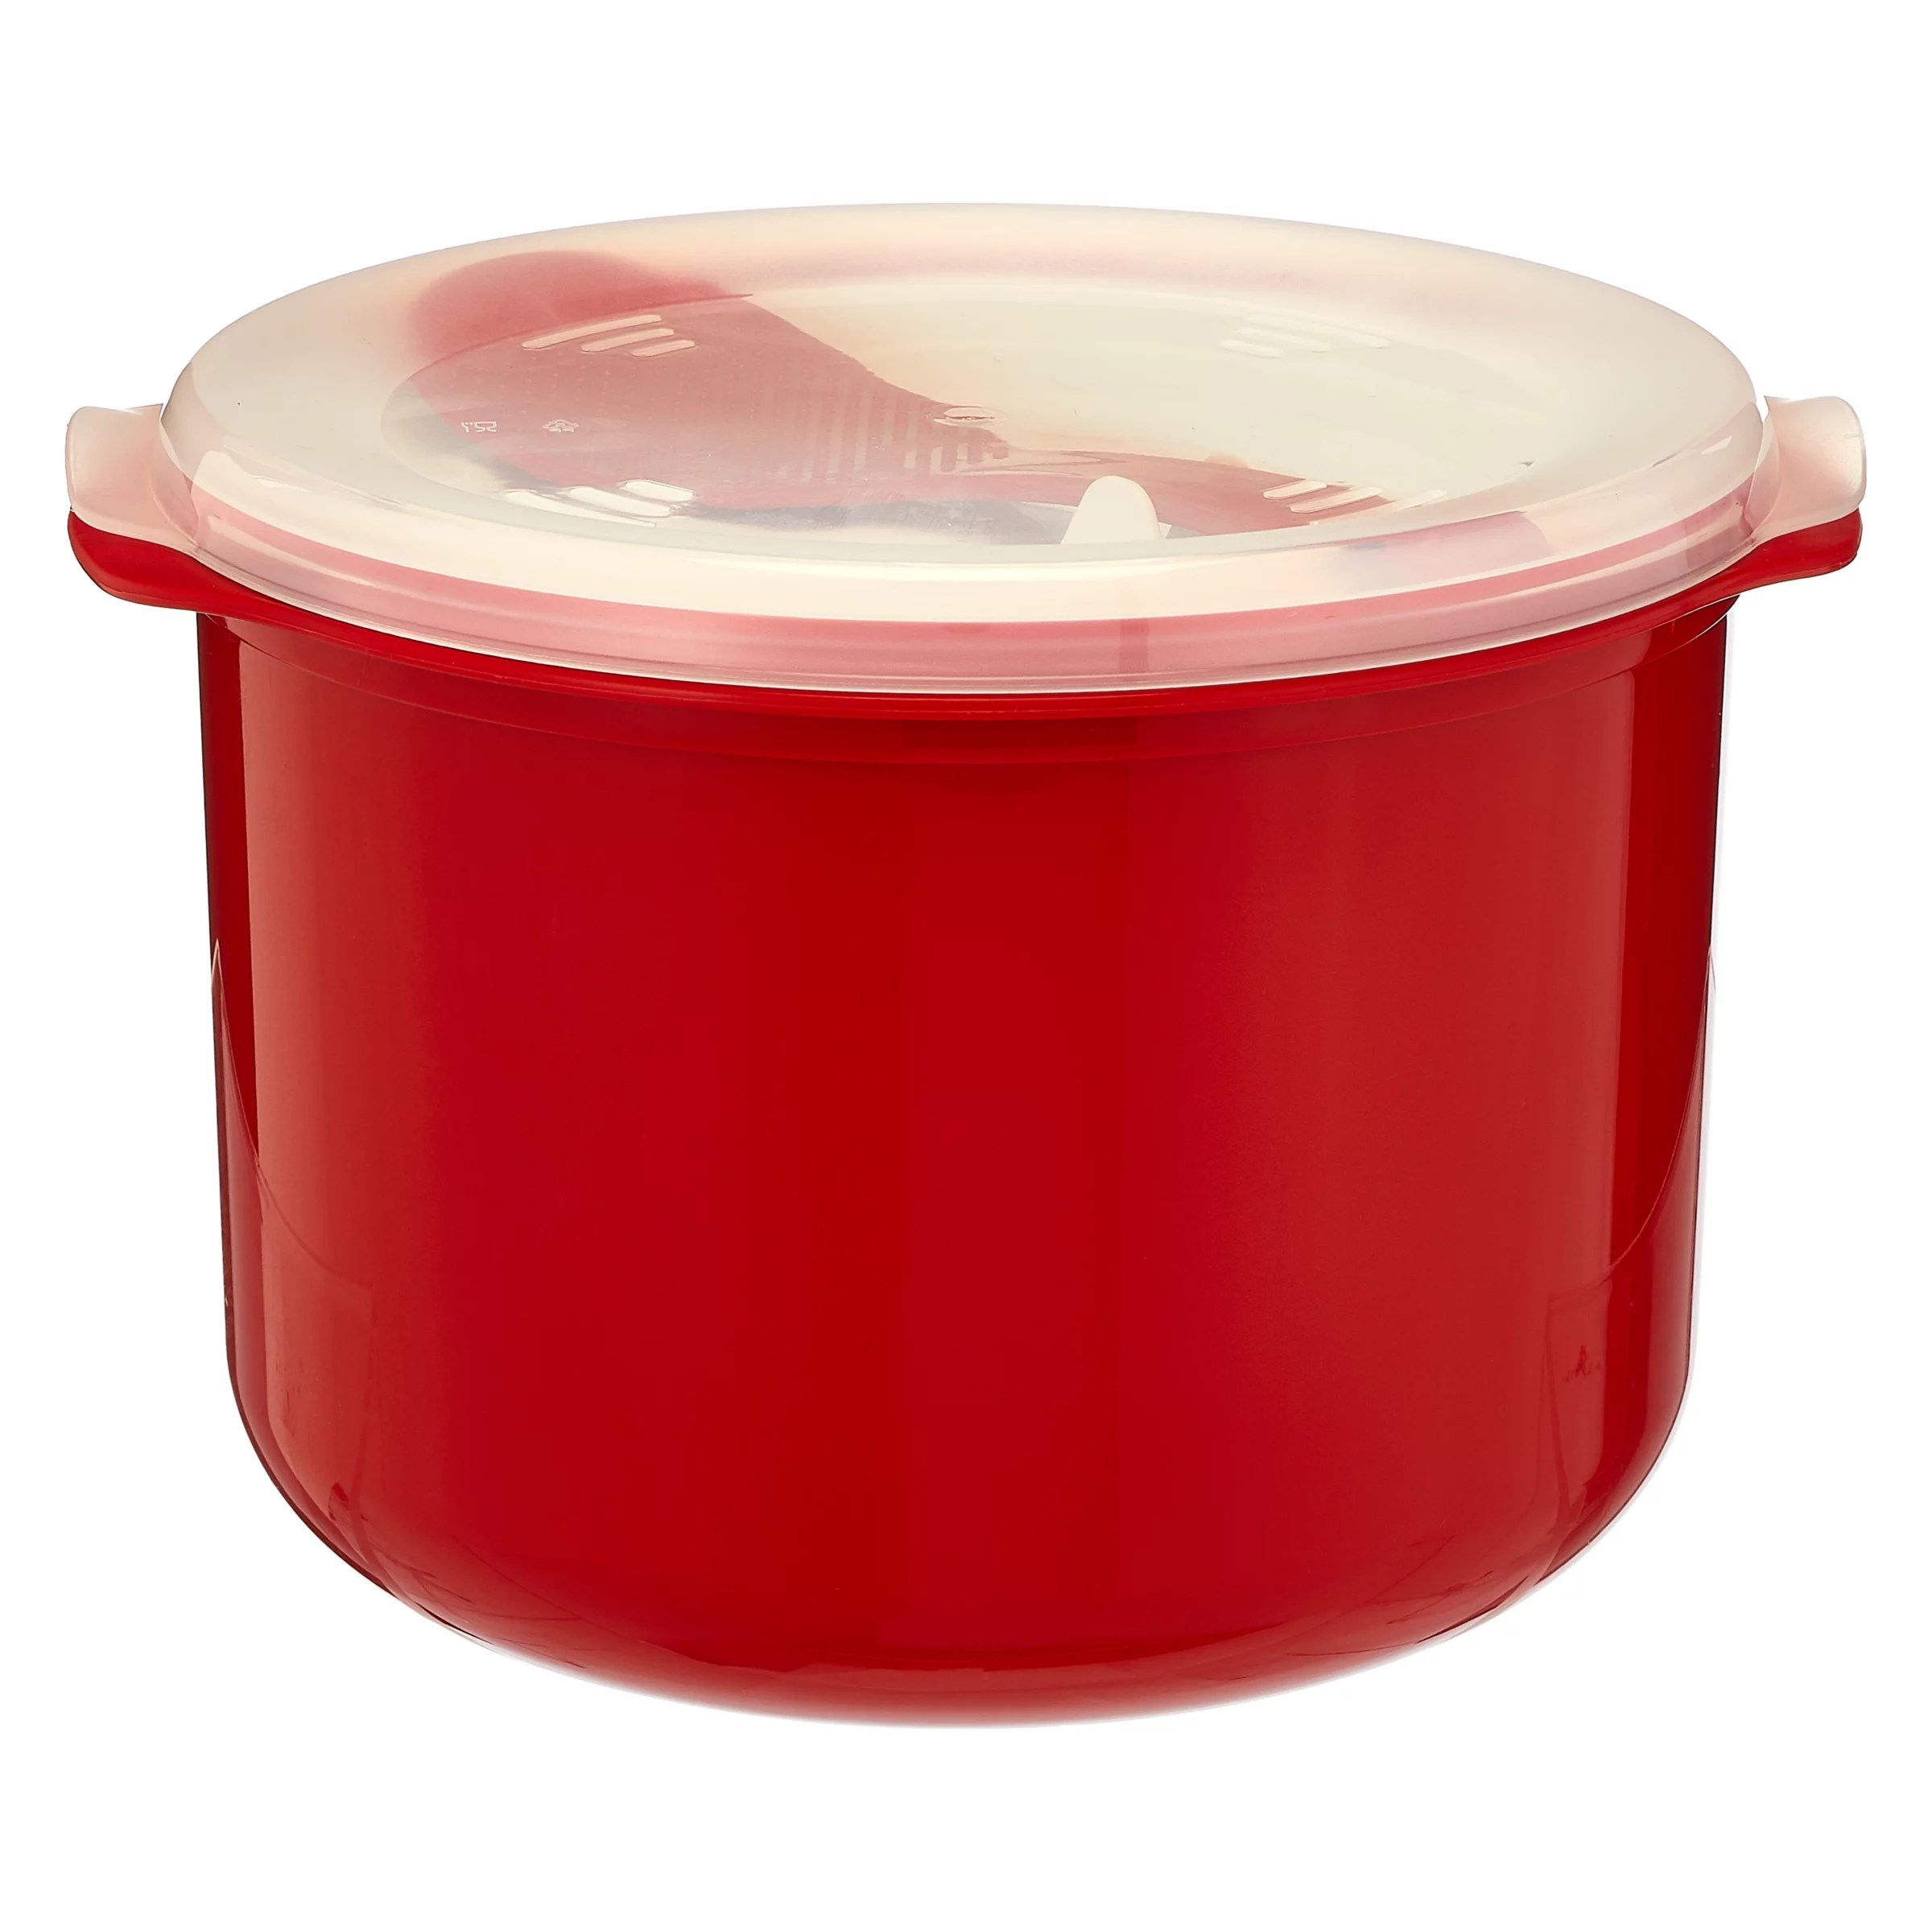 good2heat microwave rice cooker with lid red 2 8l